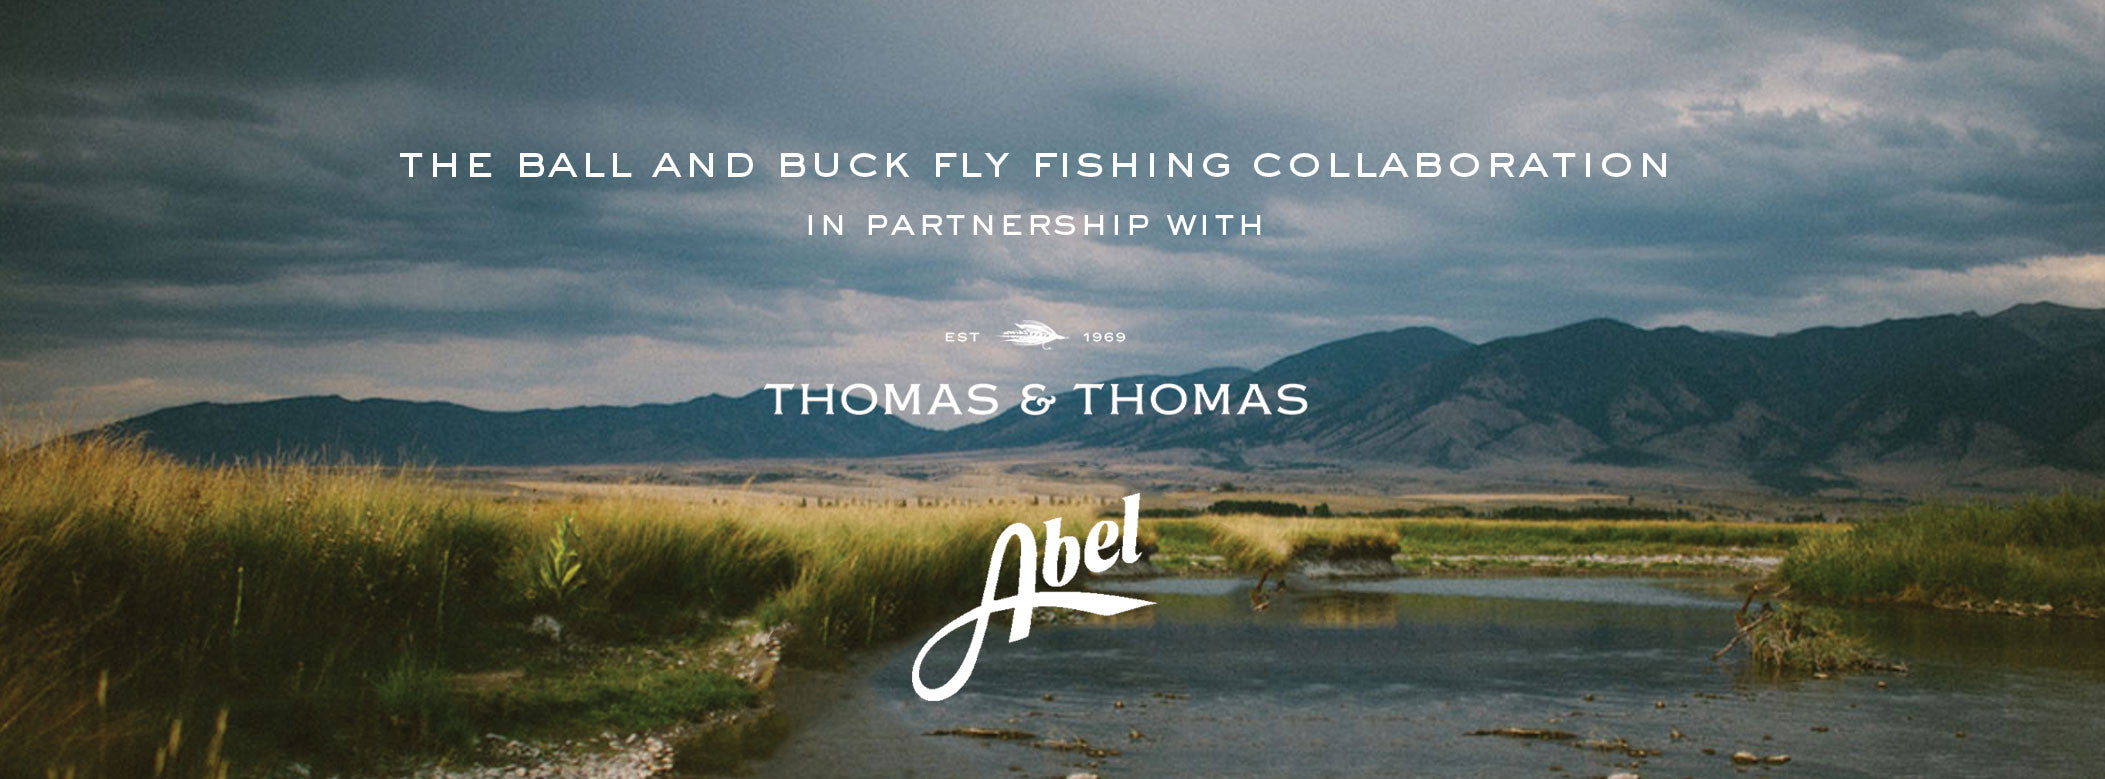 The Ball and Buck Fly Fishing Collaboration